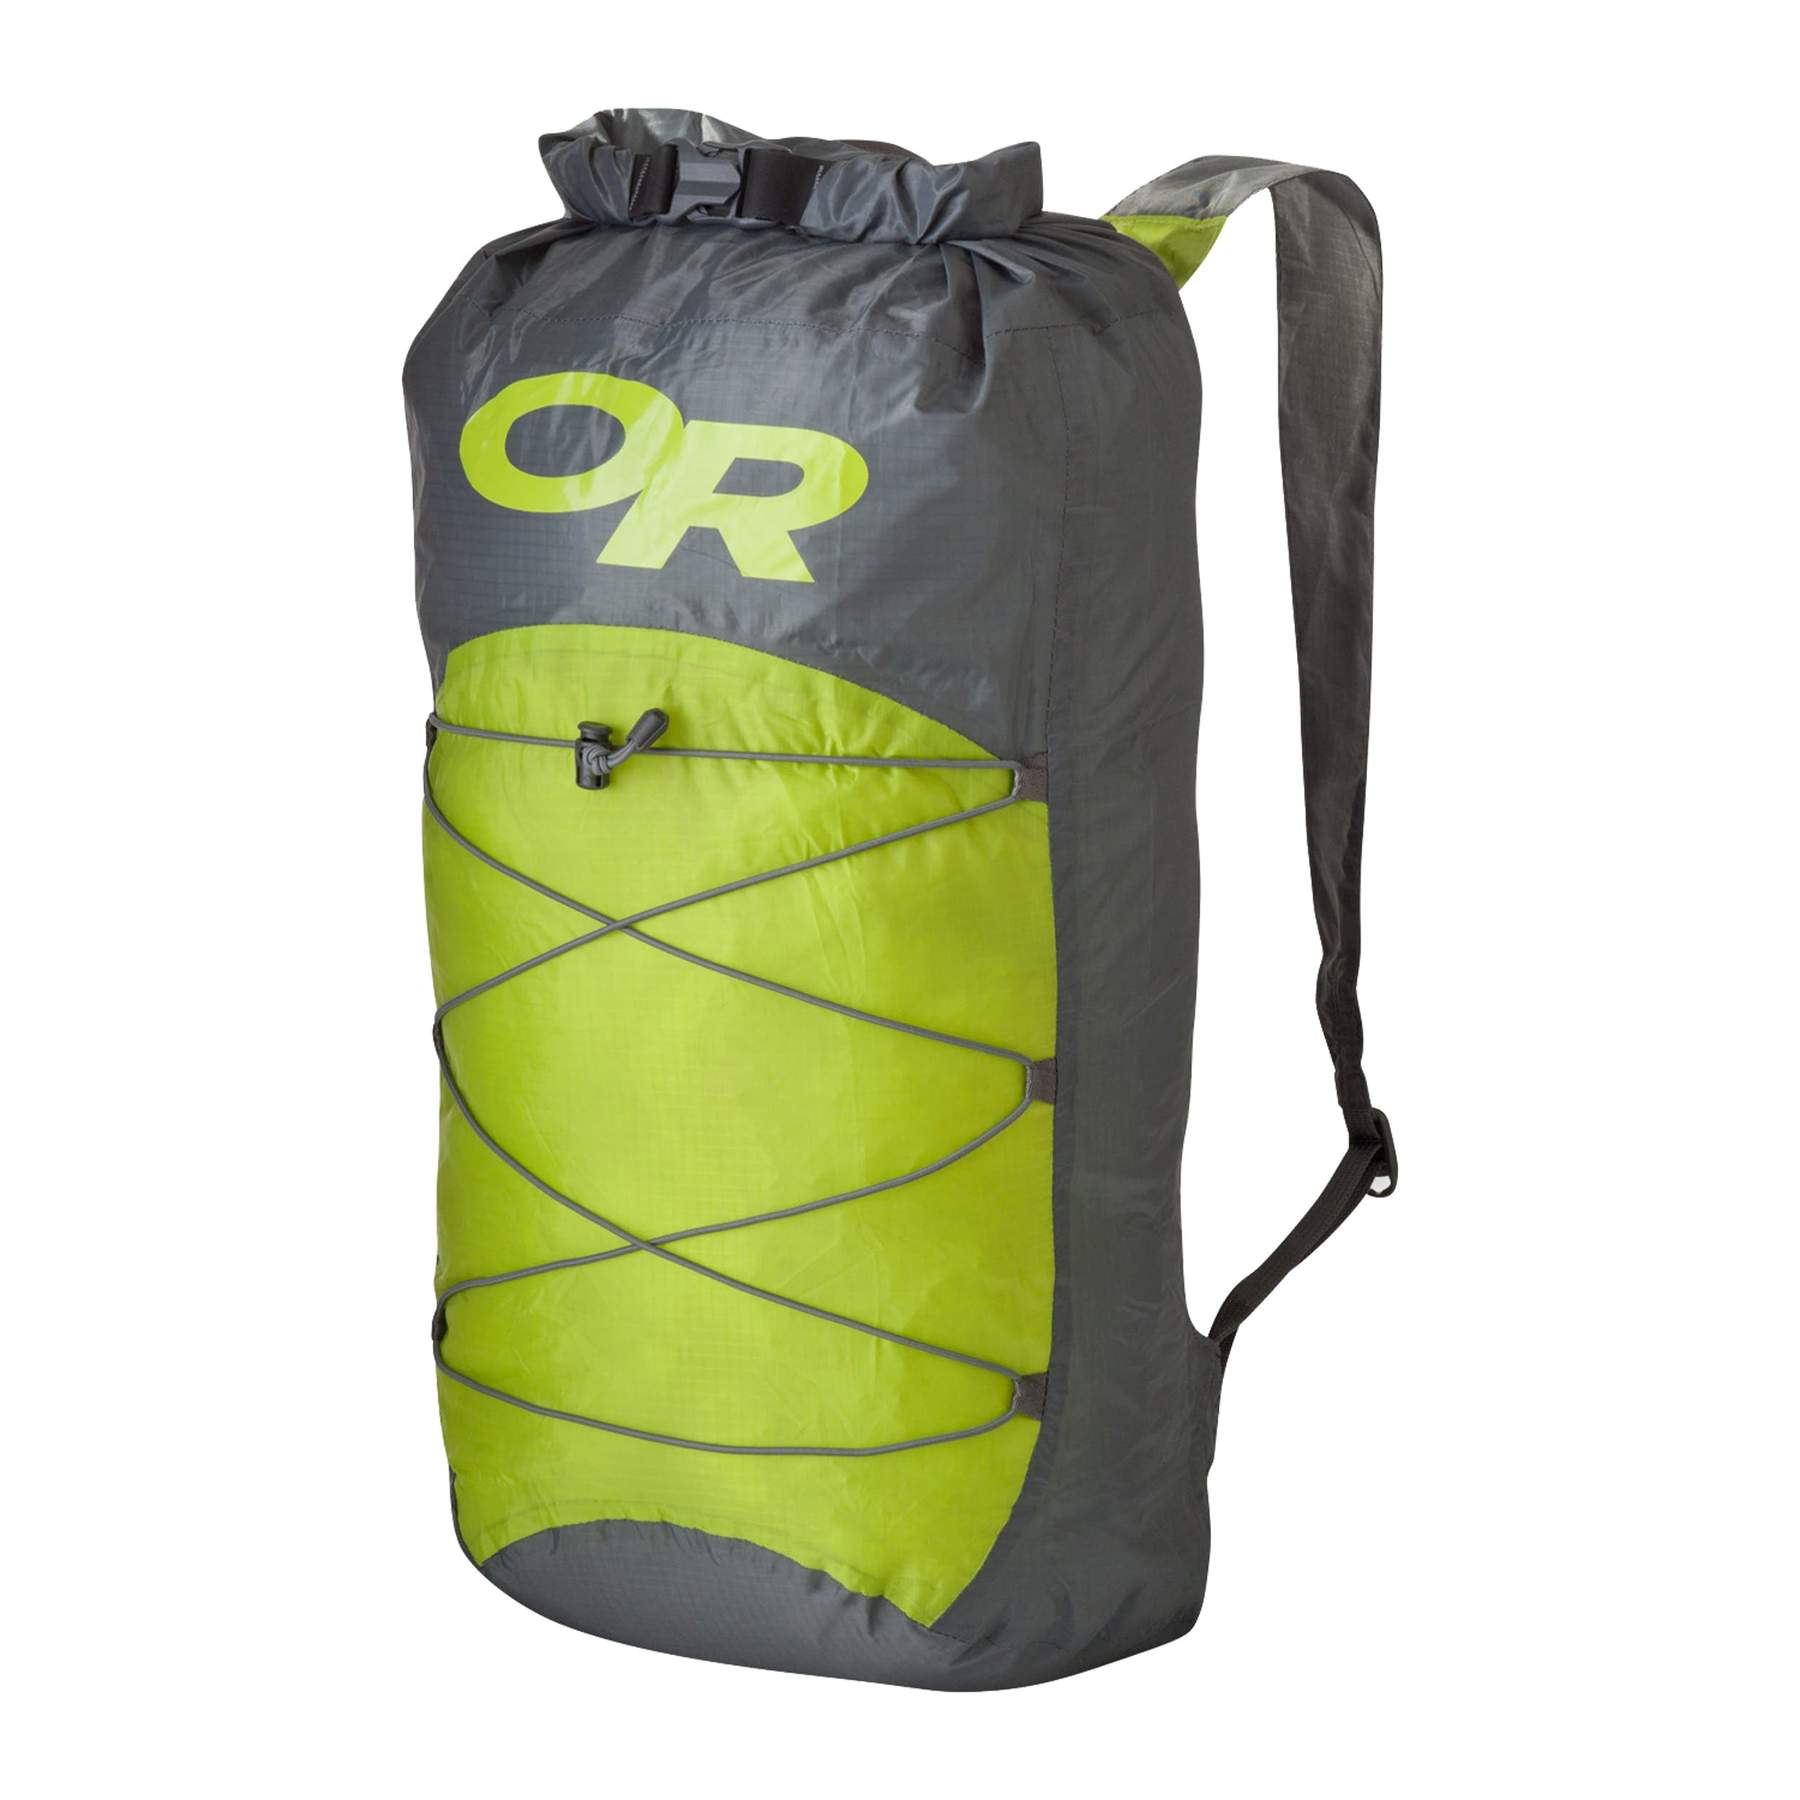 A weather-resistant day pack or dry pack for carrying extra camera equipment